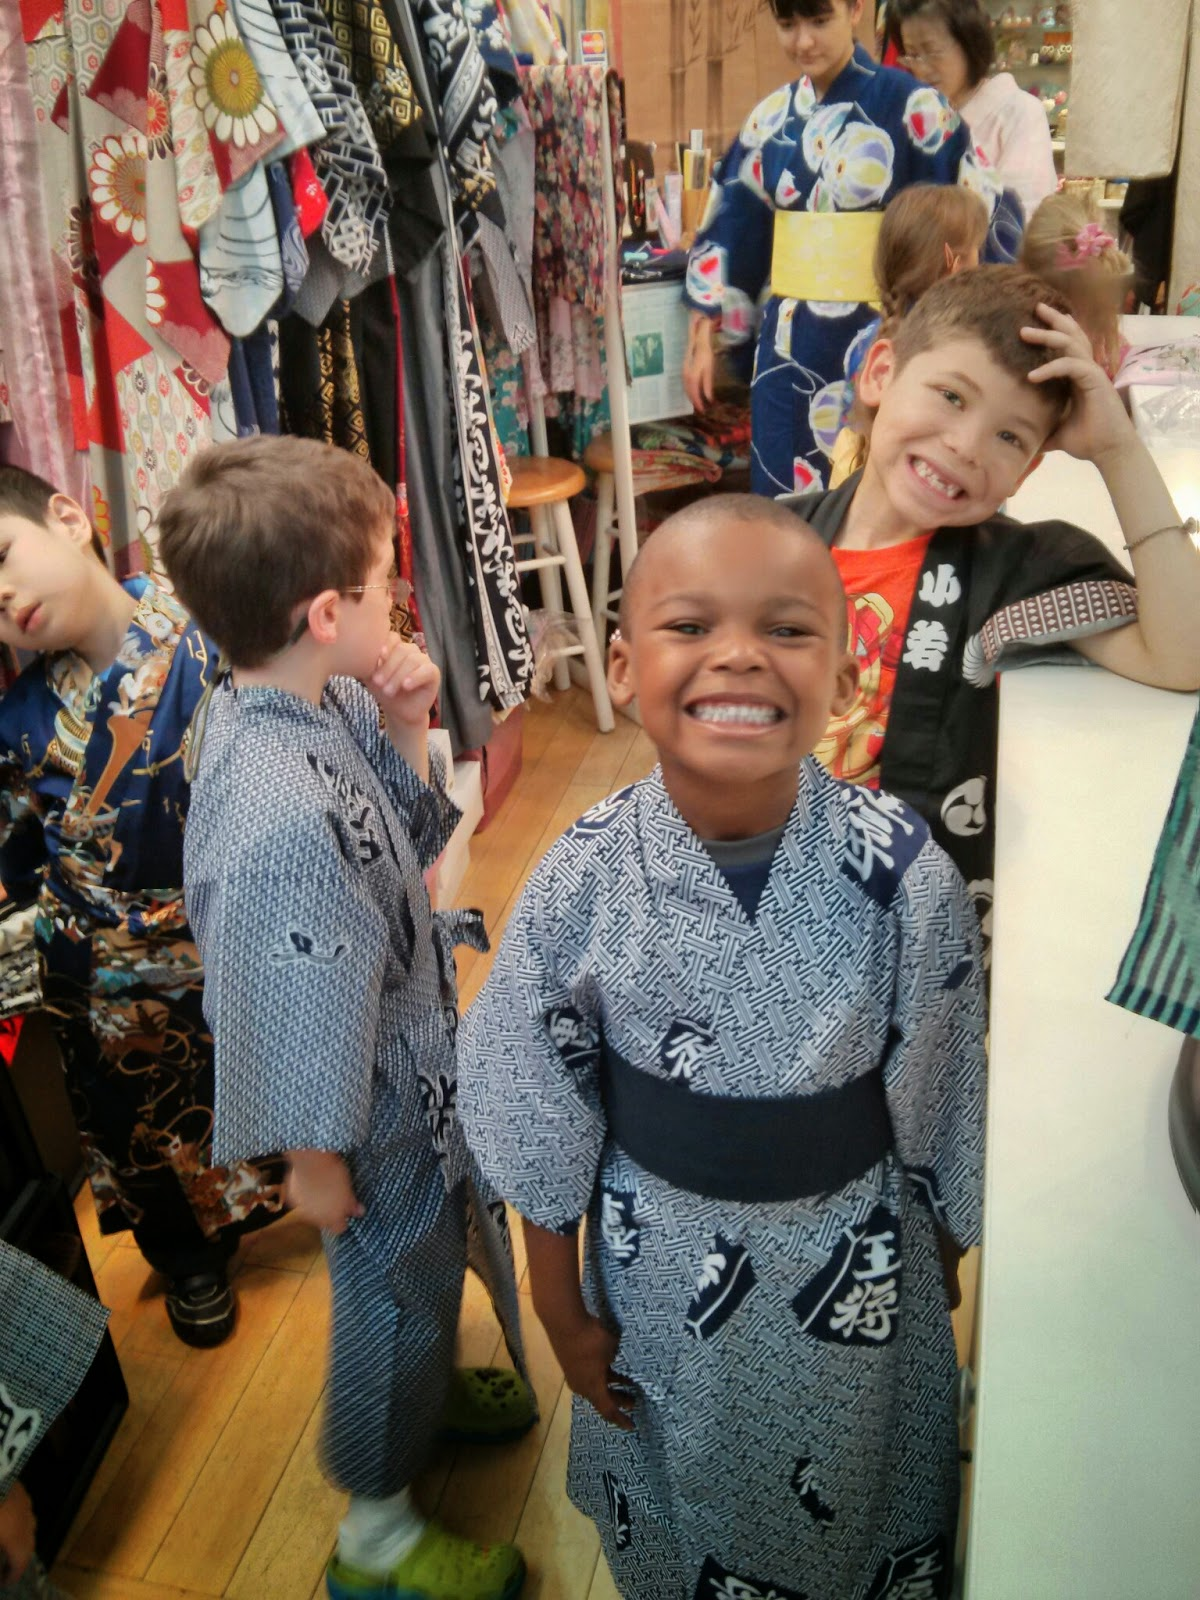 small boys in kimonos having fun at Kimono House NY